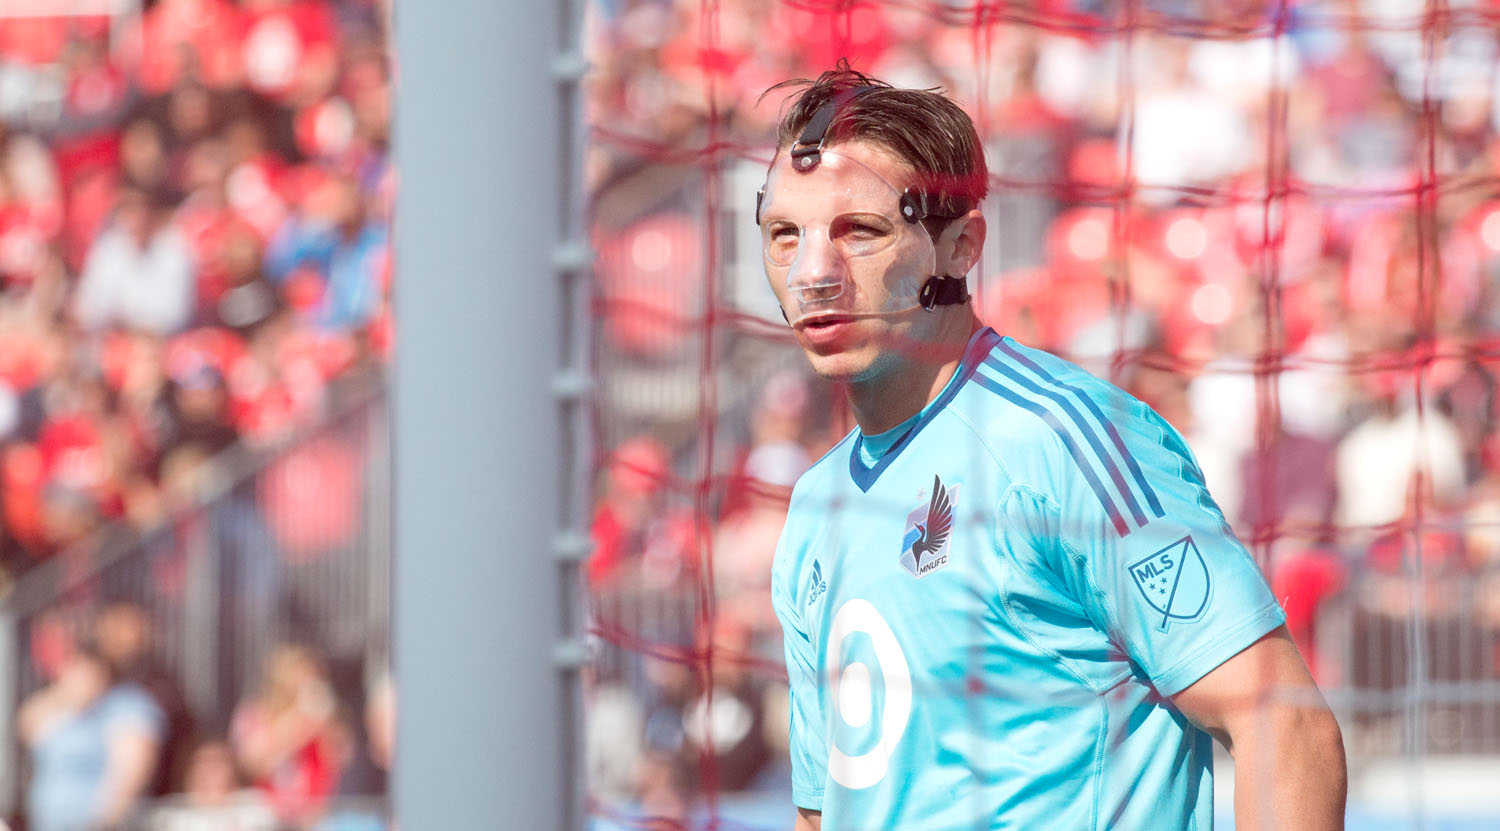 Bobby Shuttleworth wearing a face mask during a game in BMO Field against Toronto FC on May 13, 2017.Image by Dennis Marciniak of denMAR Media.